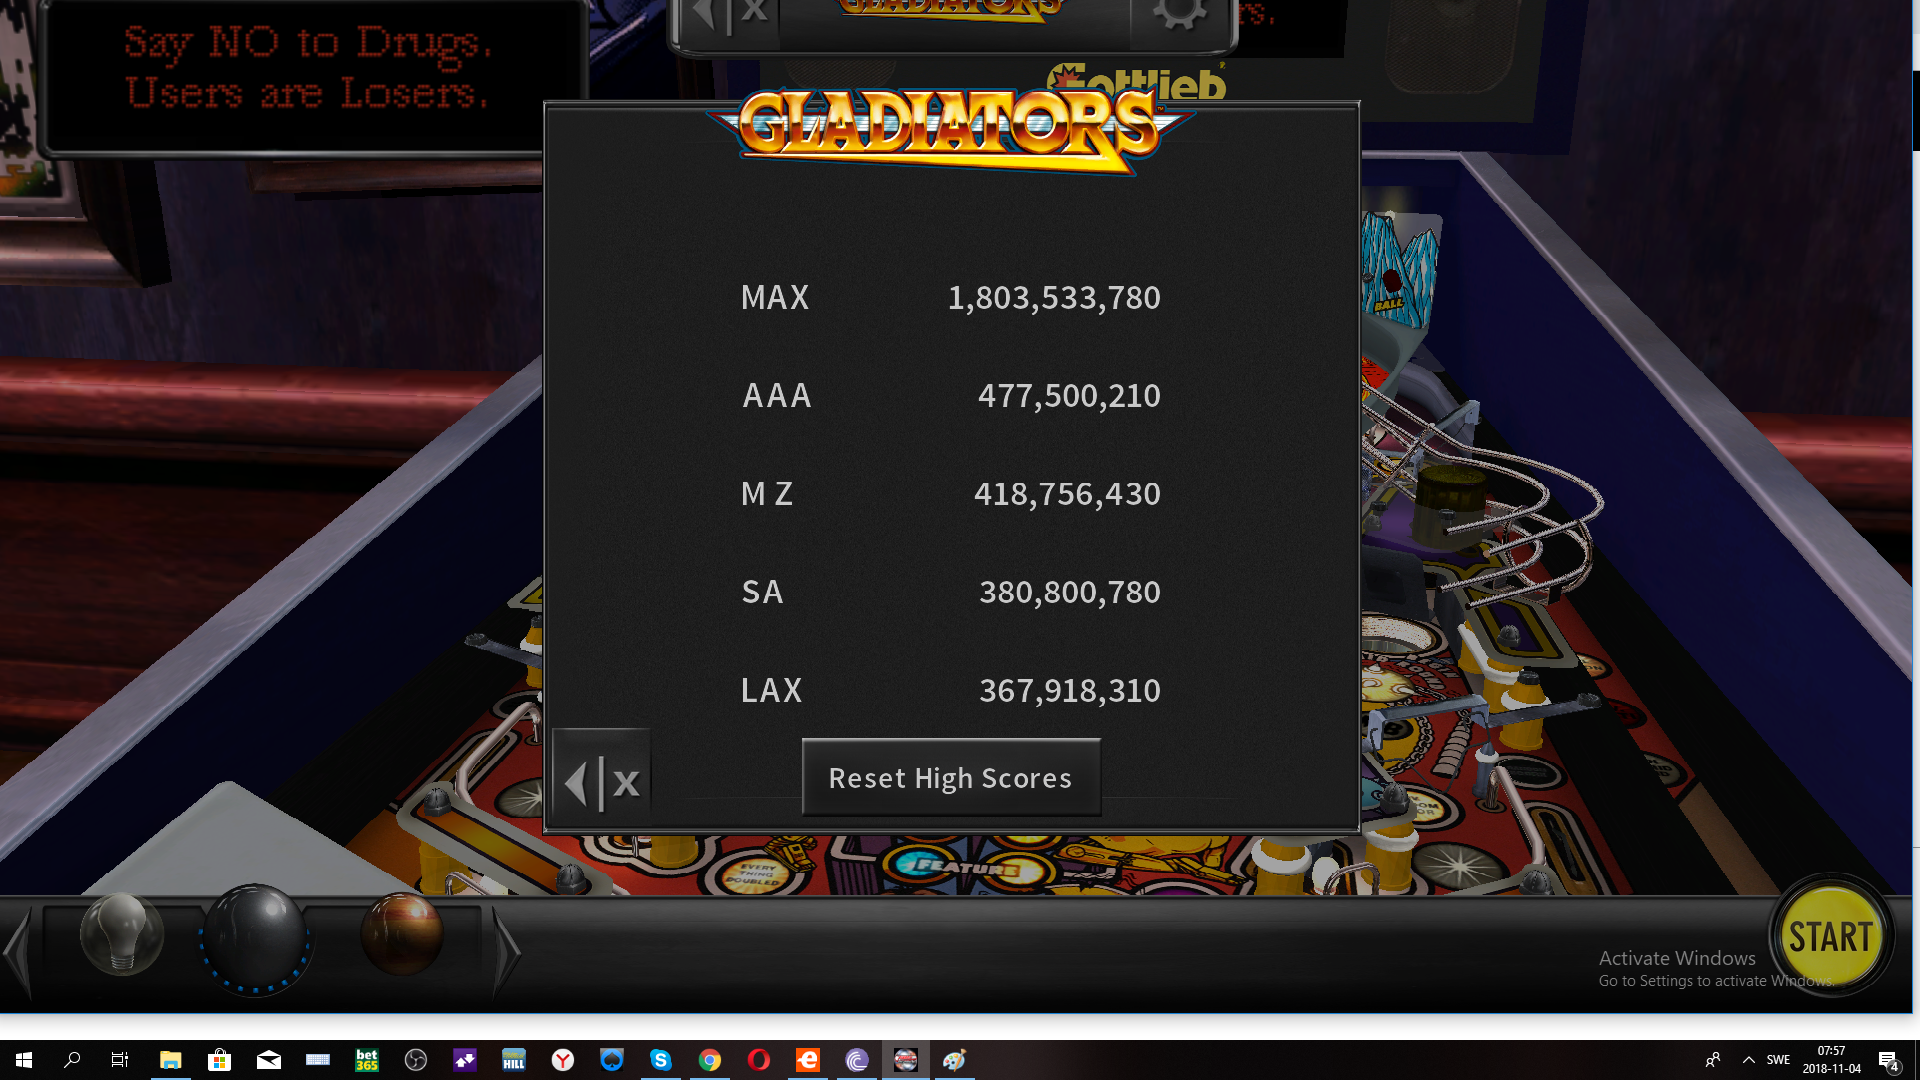 maxgreat: Pinball Arcade: Gladiators (PC) 1,803,533,780 points on 2018-11-04 01:57:34